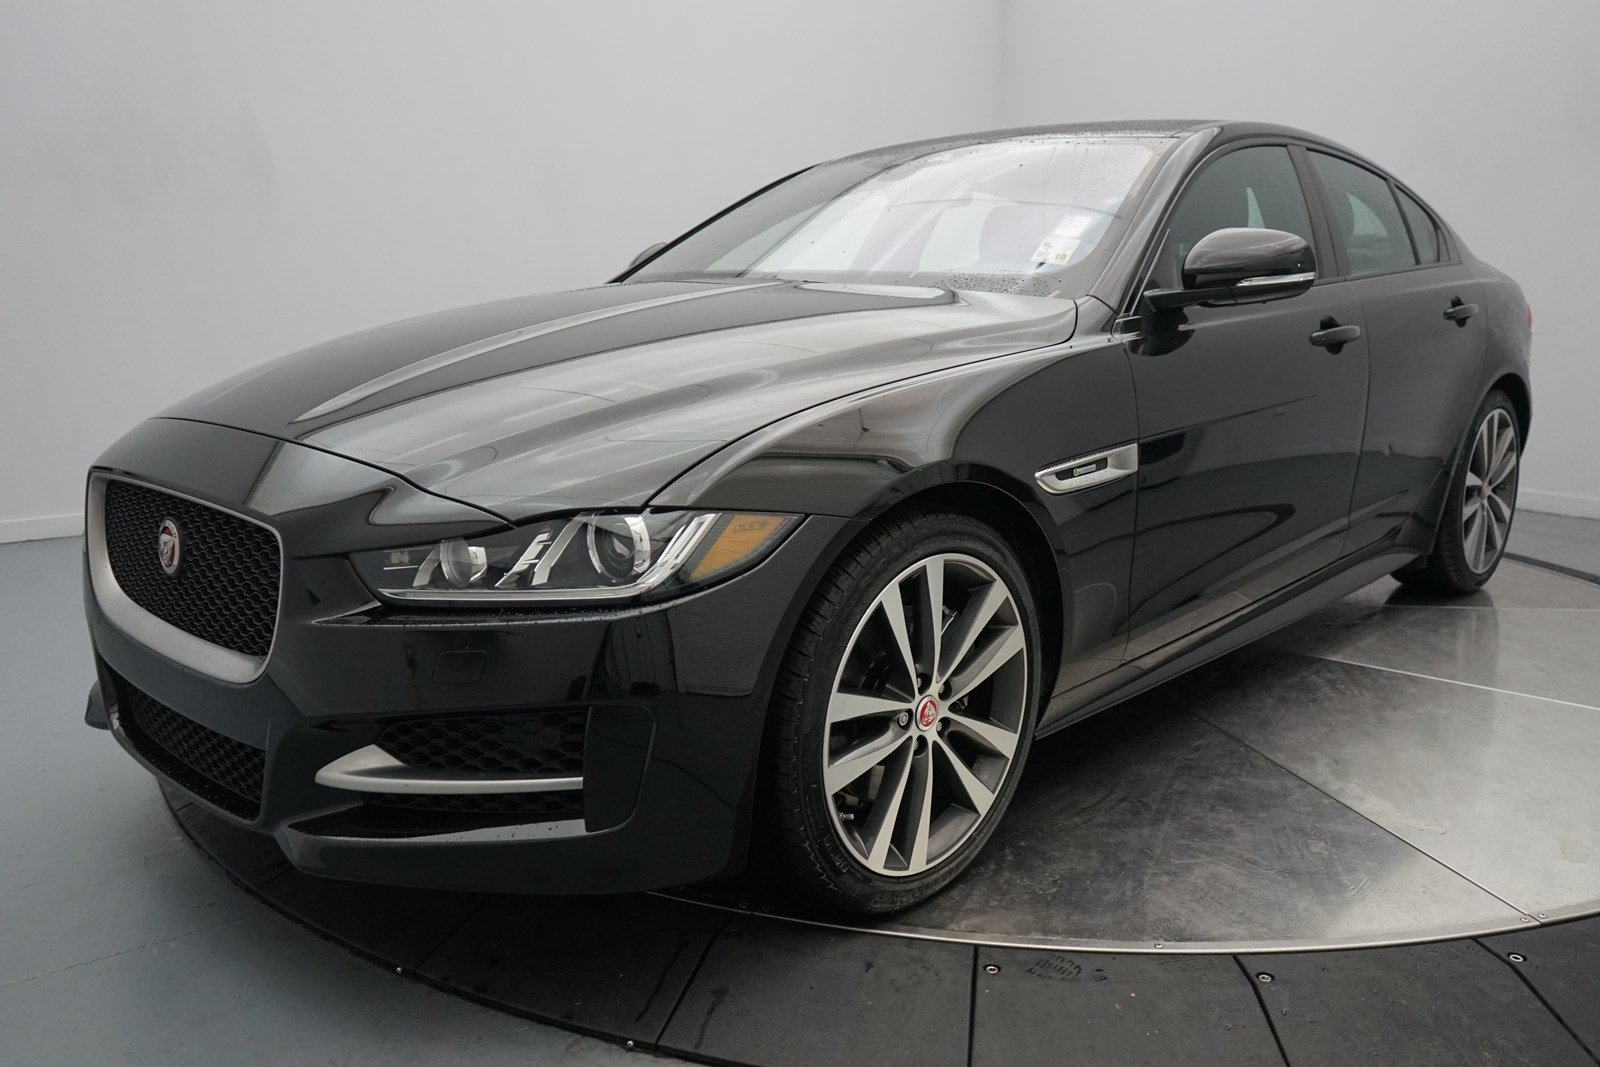 new 2018 jaguar xe 25t r sport 4 door sedan in shreveport 50339 jaguar of shreveport. Black Bedroom Furniture Sets. Home Design Ideas